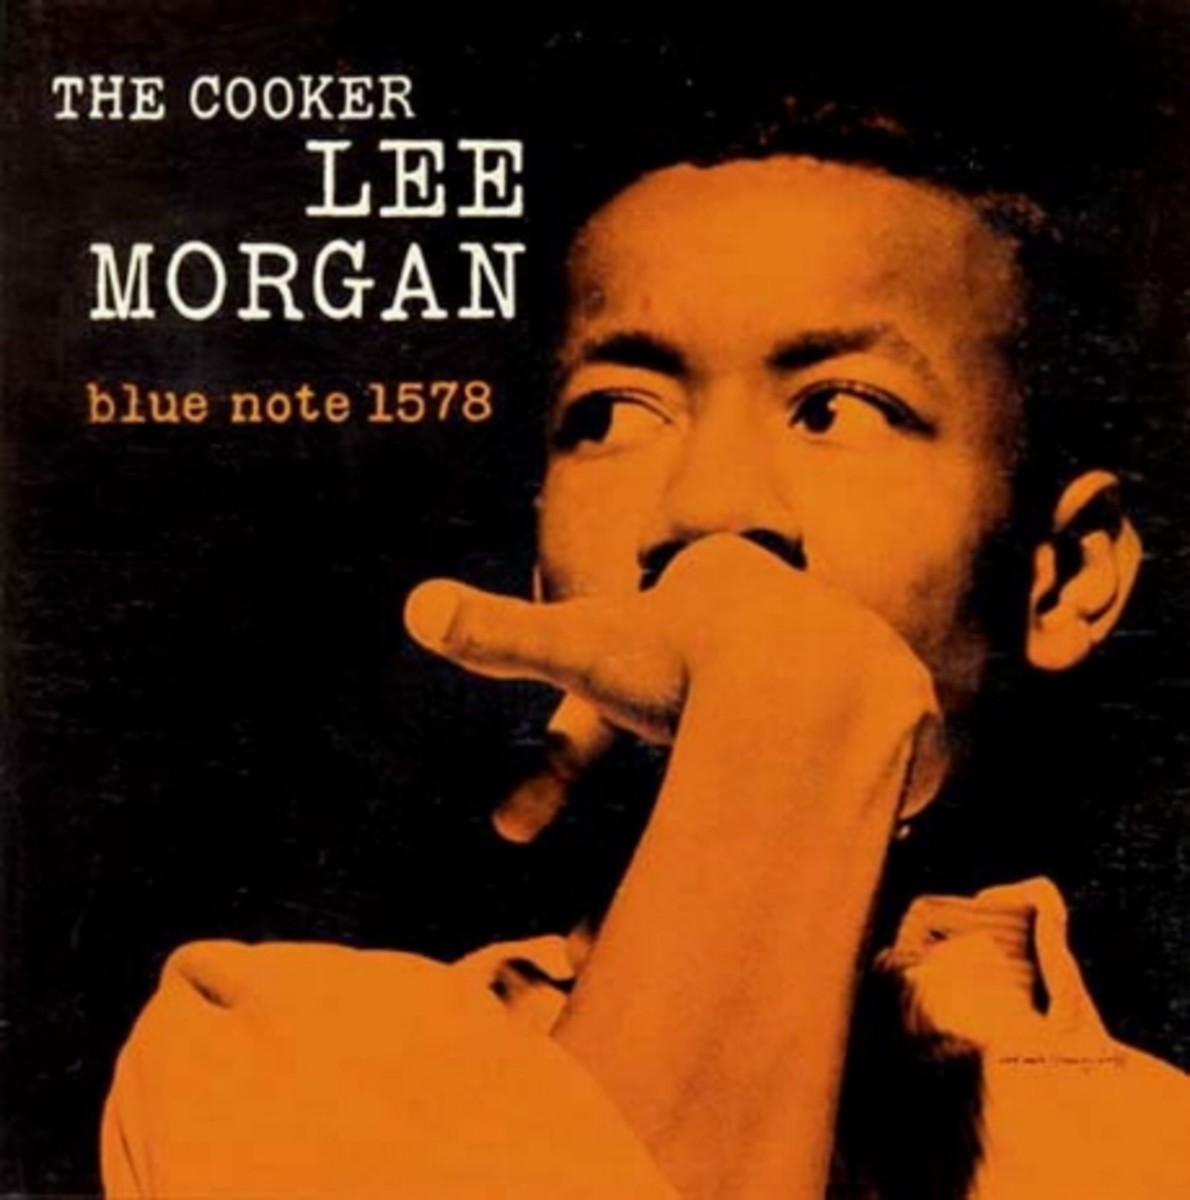 "Lee Morgan ""The Cooker"" Blue Note Records BLP 1578 12"" LP Vinyl Record (1958) Album Cover Design by Reid Miles Photo by Francis Wolff"